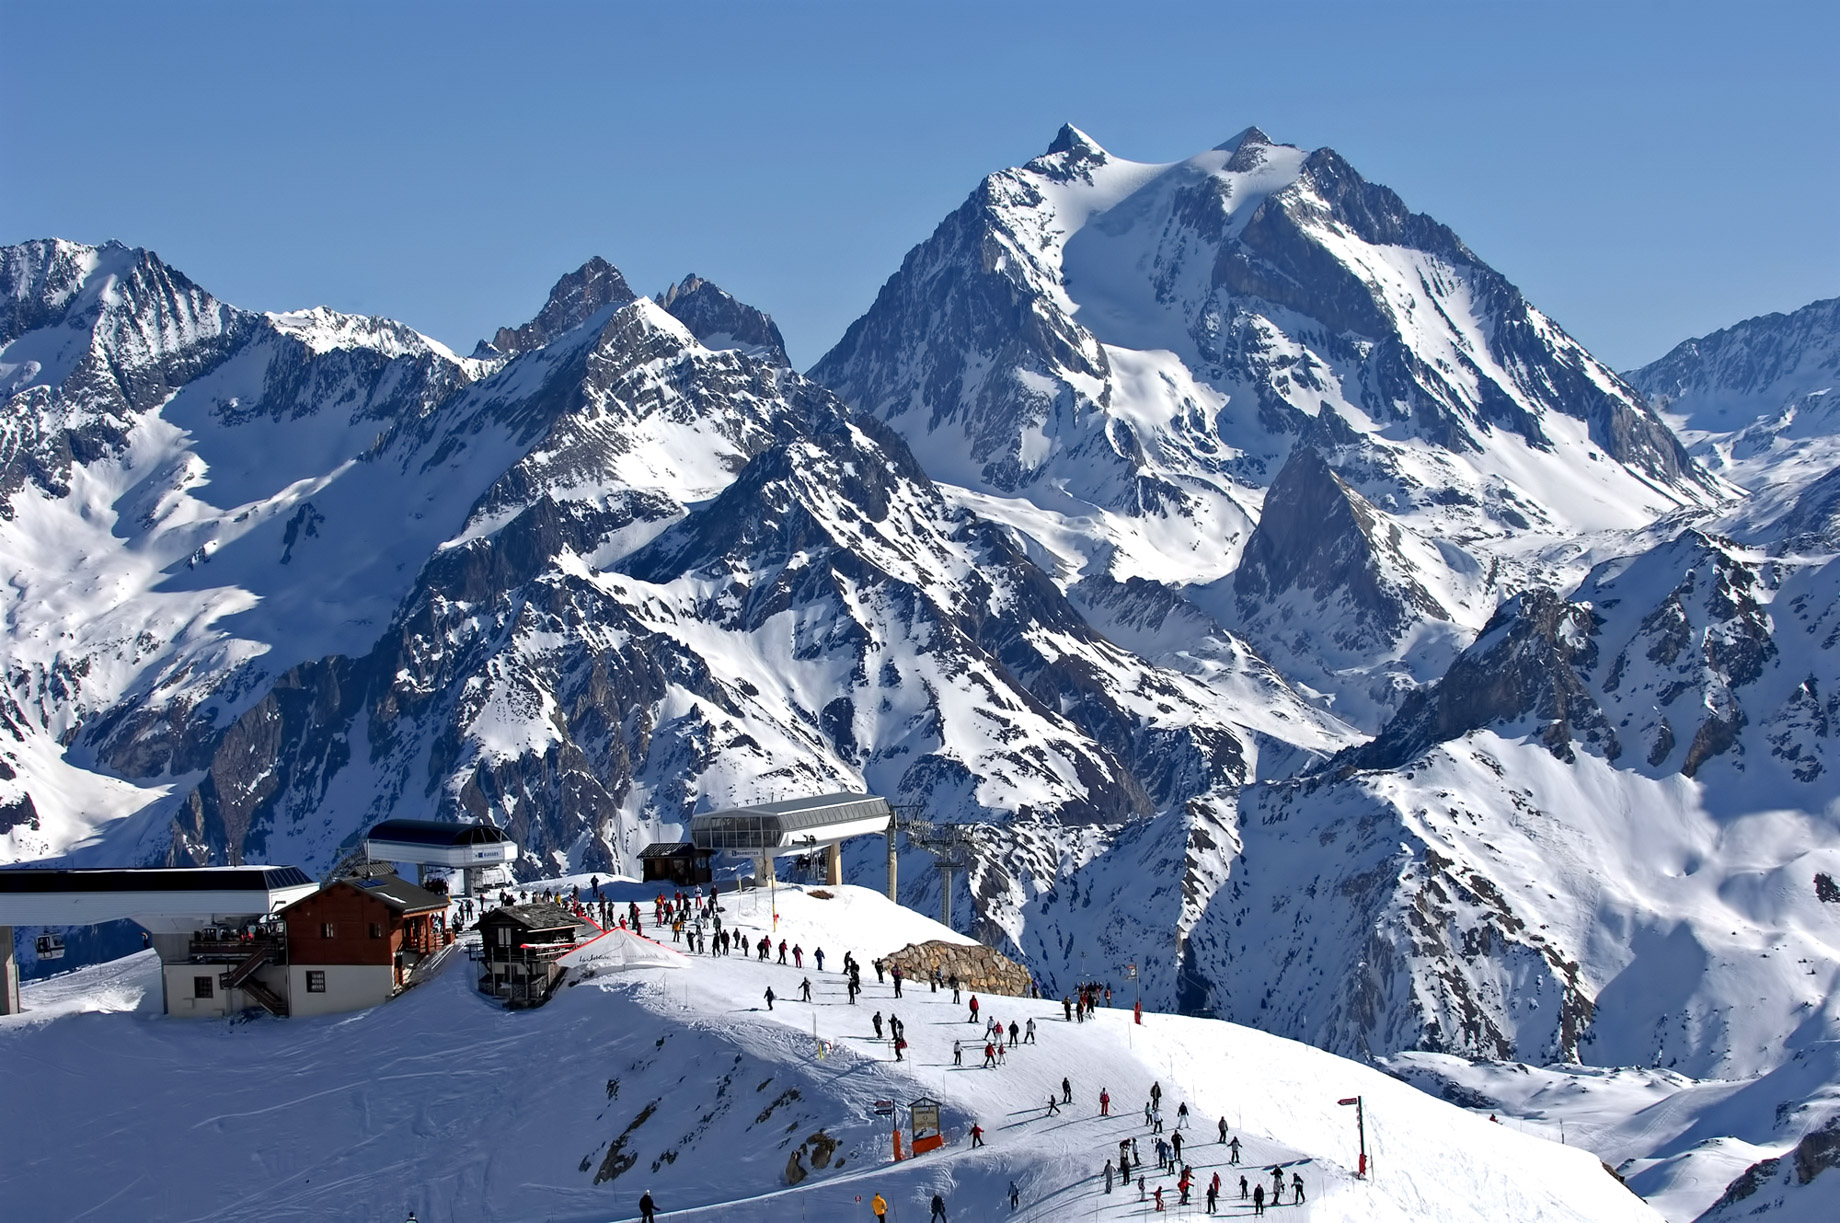 Méribel - French Alps Mountain Resort - An Exclusive Très Chic Luxury Winter Paradise